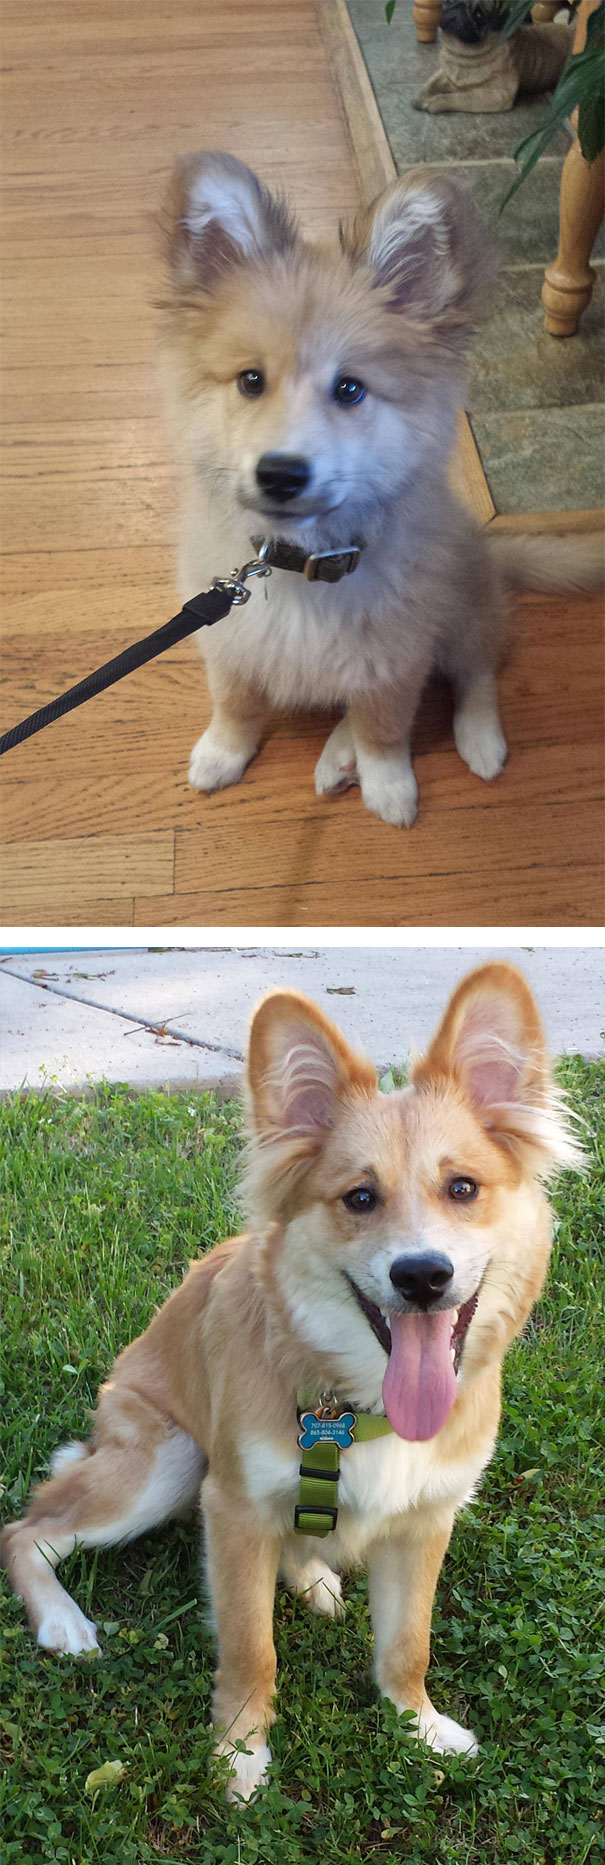 Gordie (corgi + golden retriever)